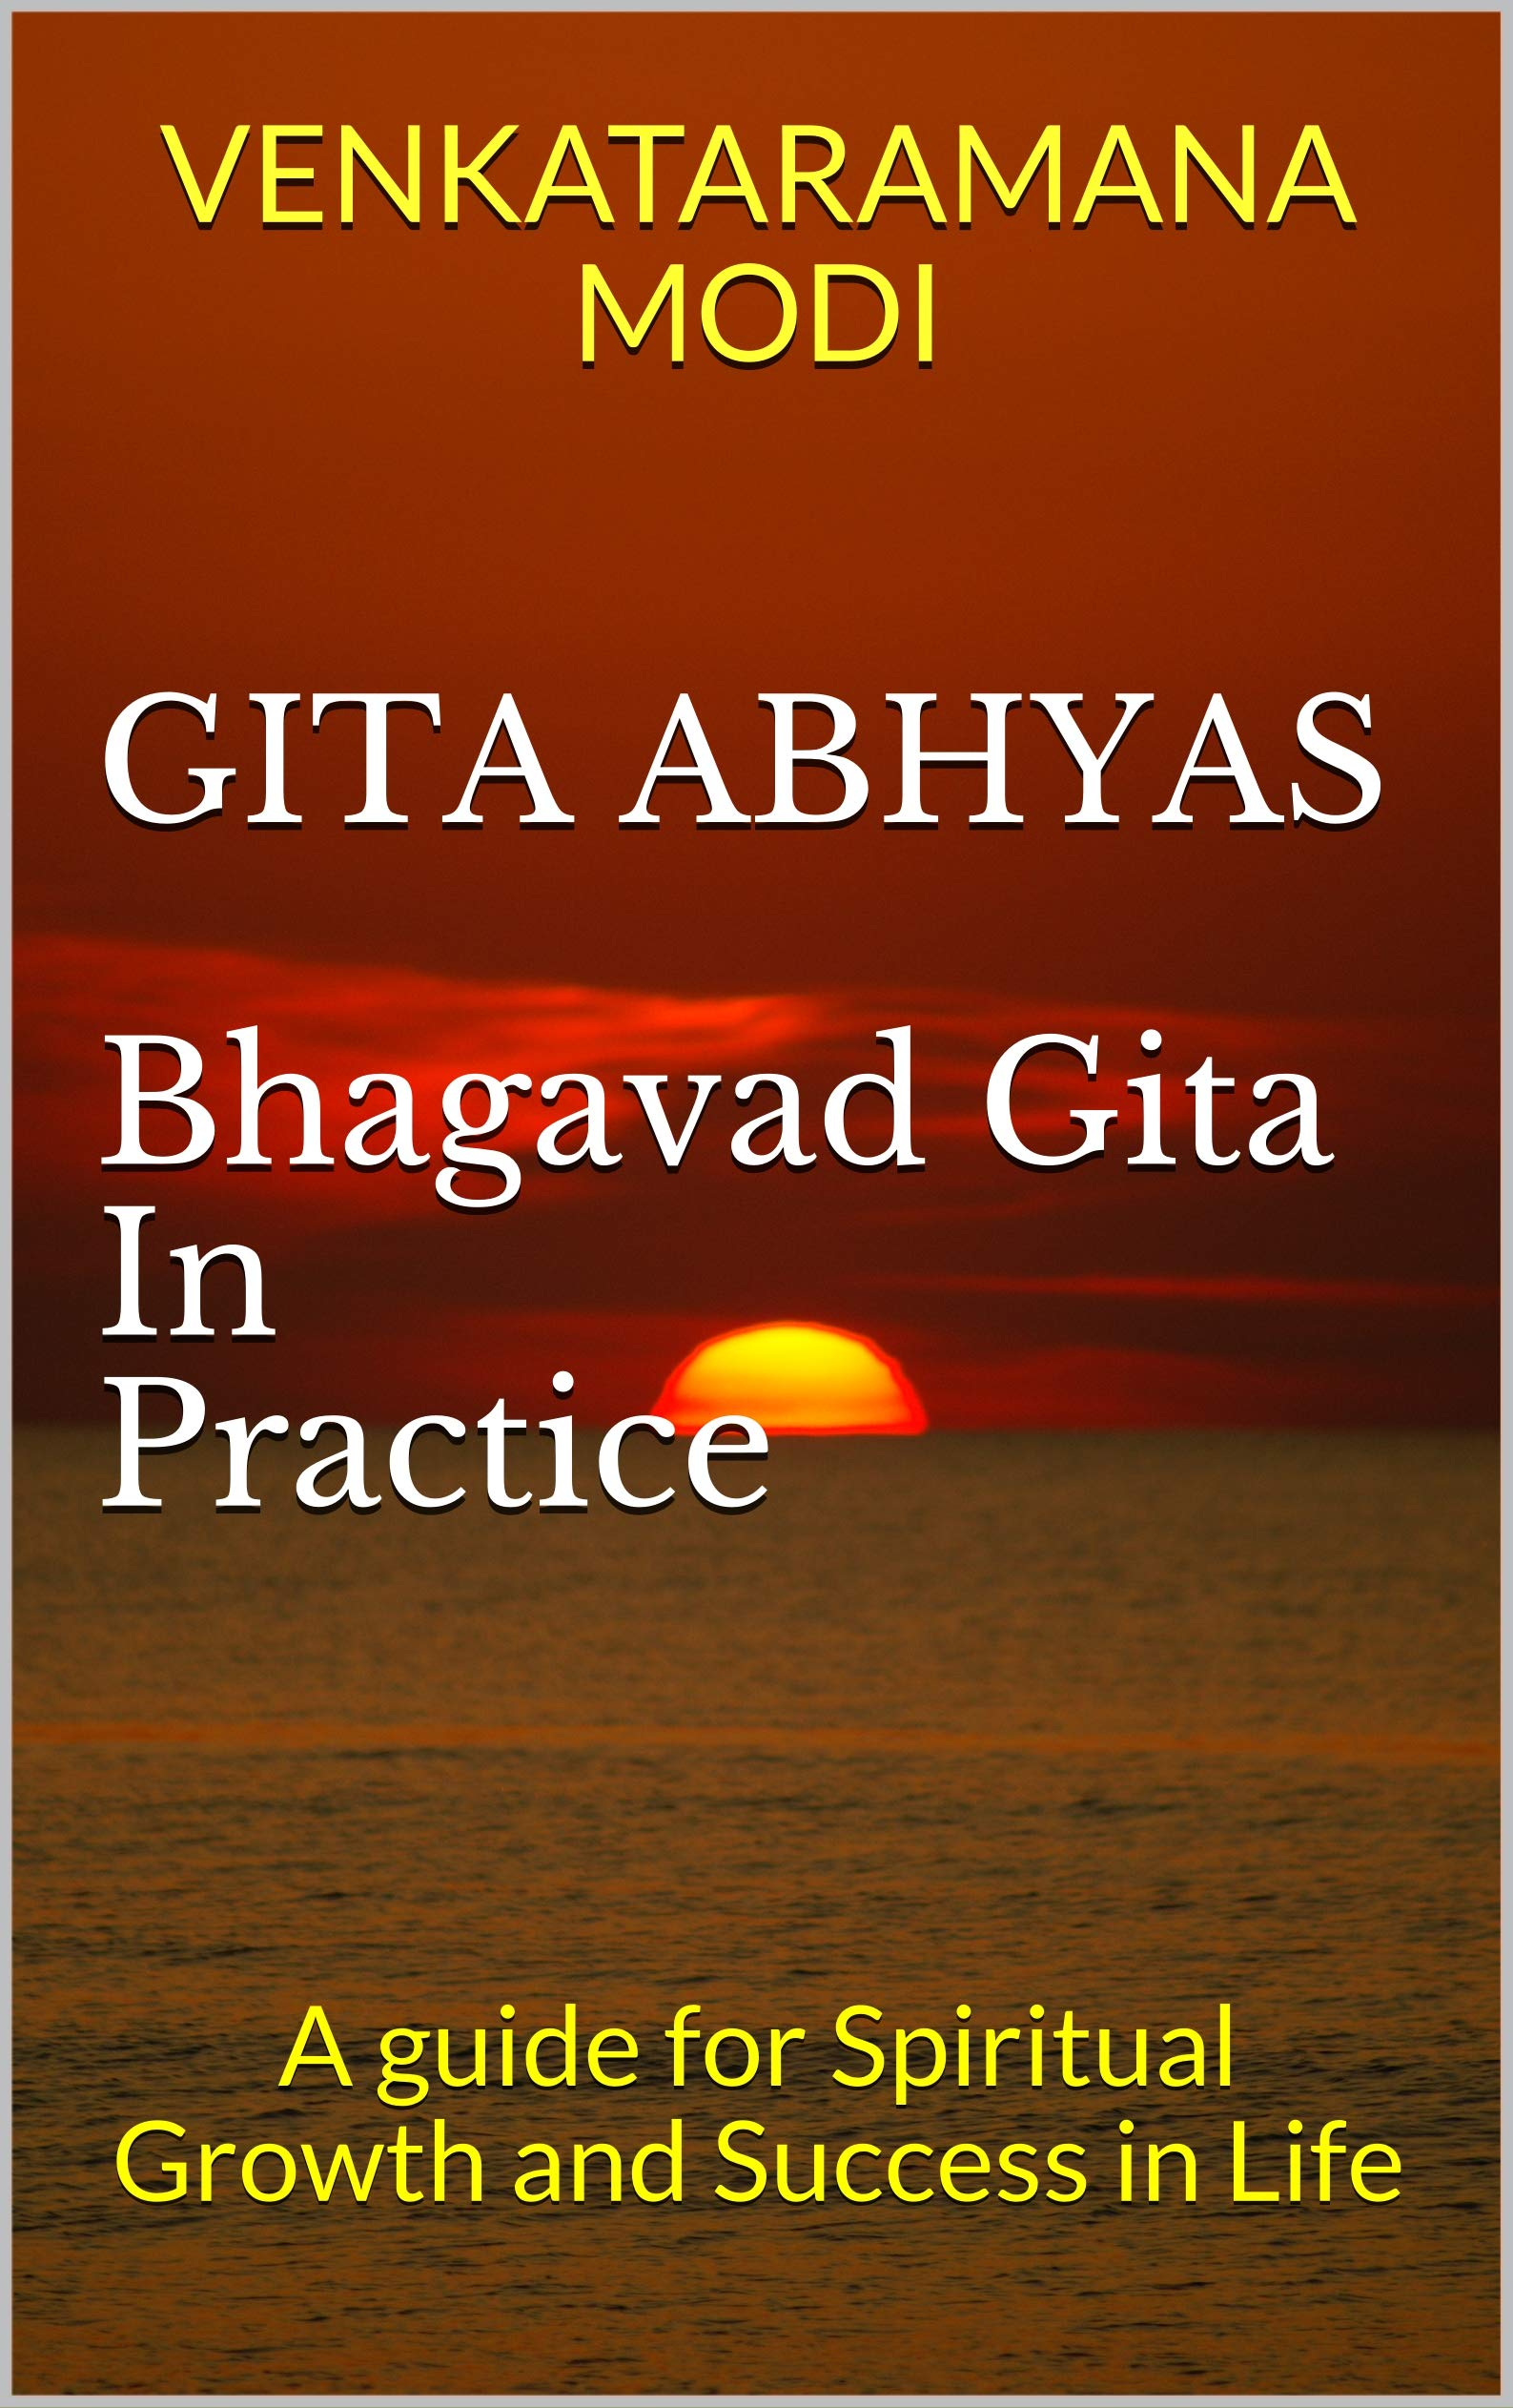 GITA ABHYAS Bhagavad Gita In Practice: A guide for Spiritual Growth and Success in Life